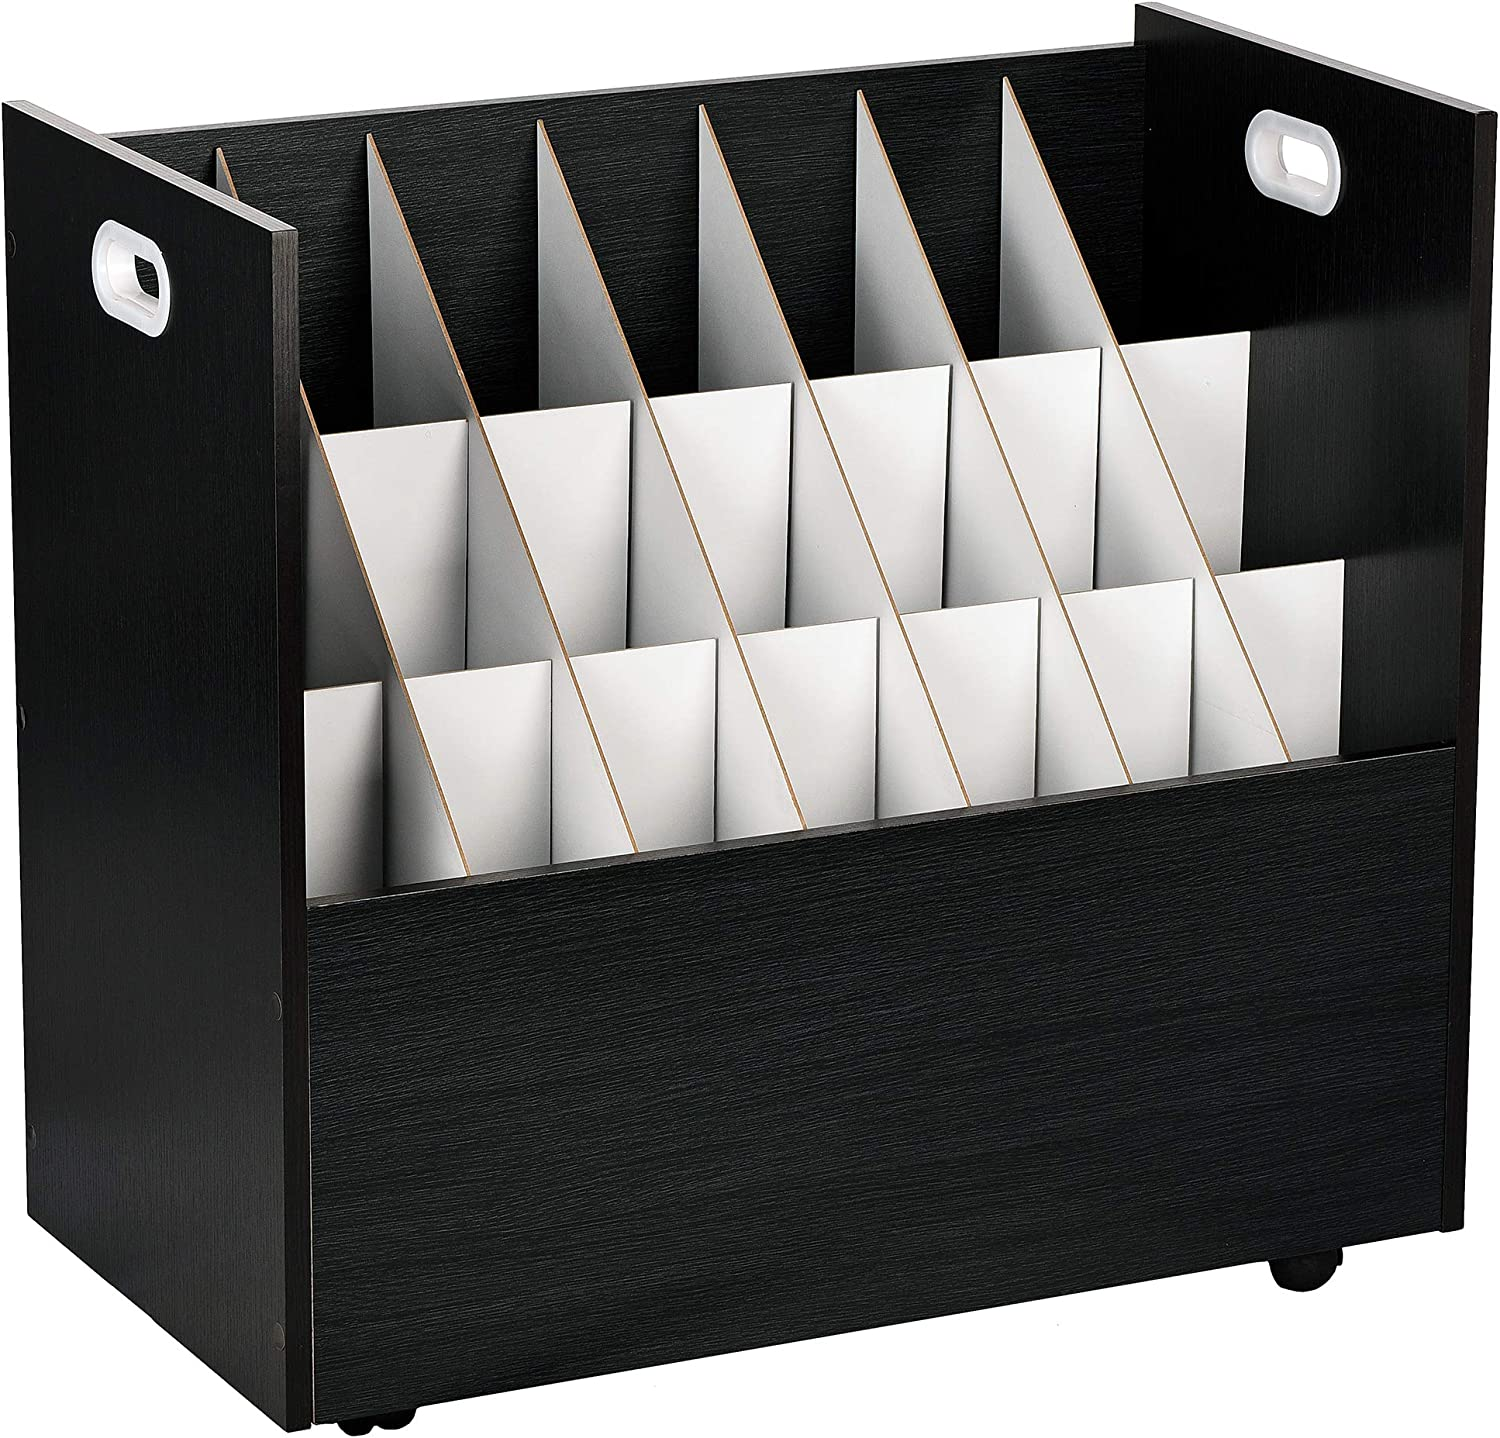 AdirOffice - 21 Slots - Mobile Wood Blueprint Roll File Holder - Architectural Plan Storage Organizer- for Home Office or School Use (Black)